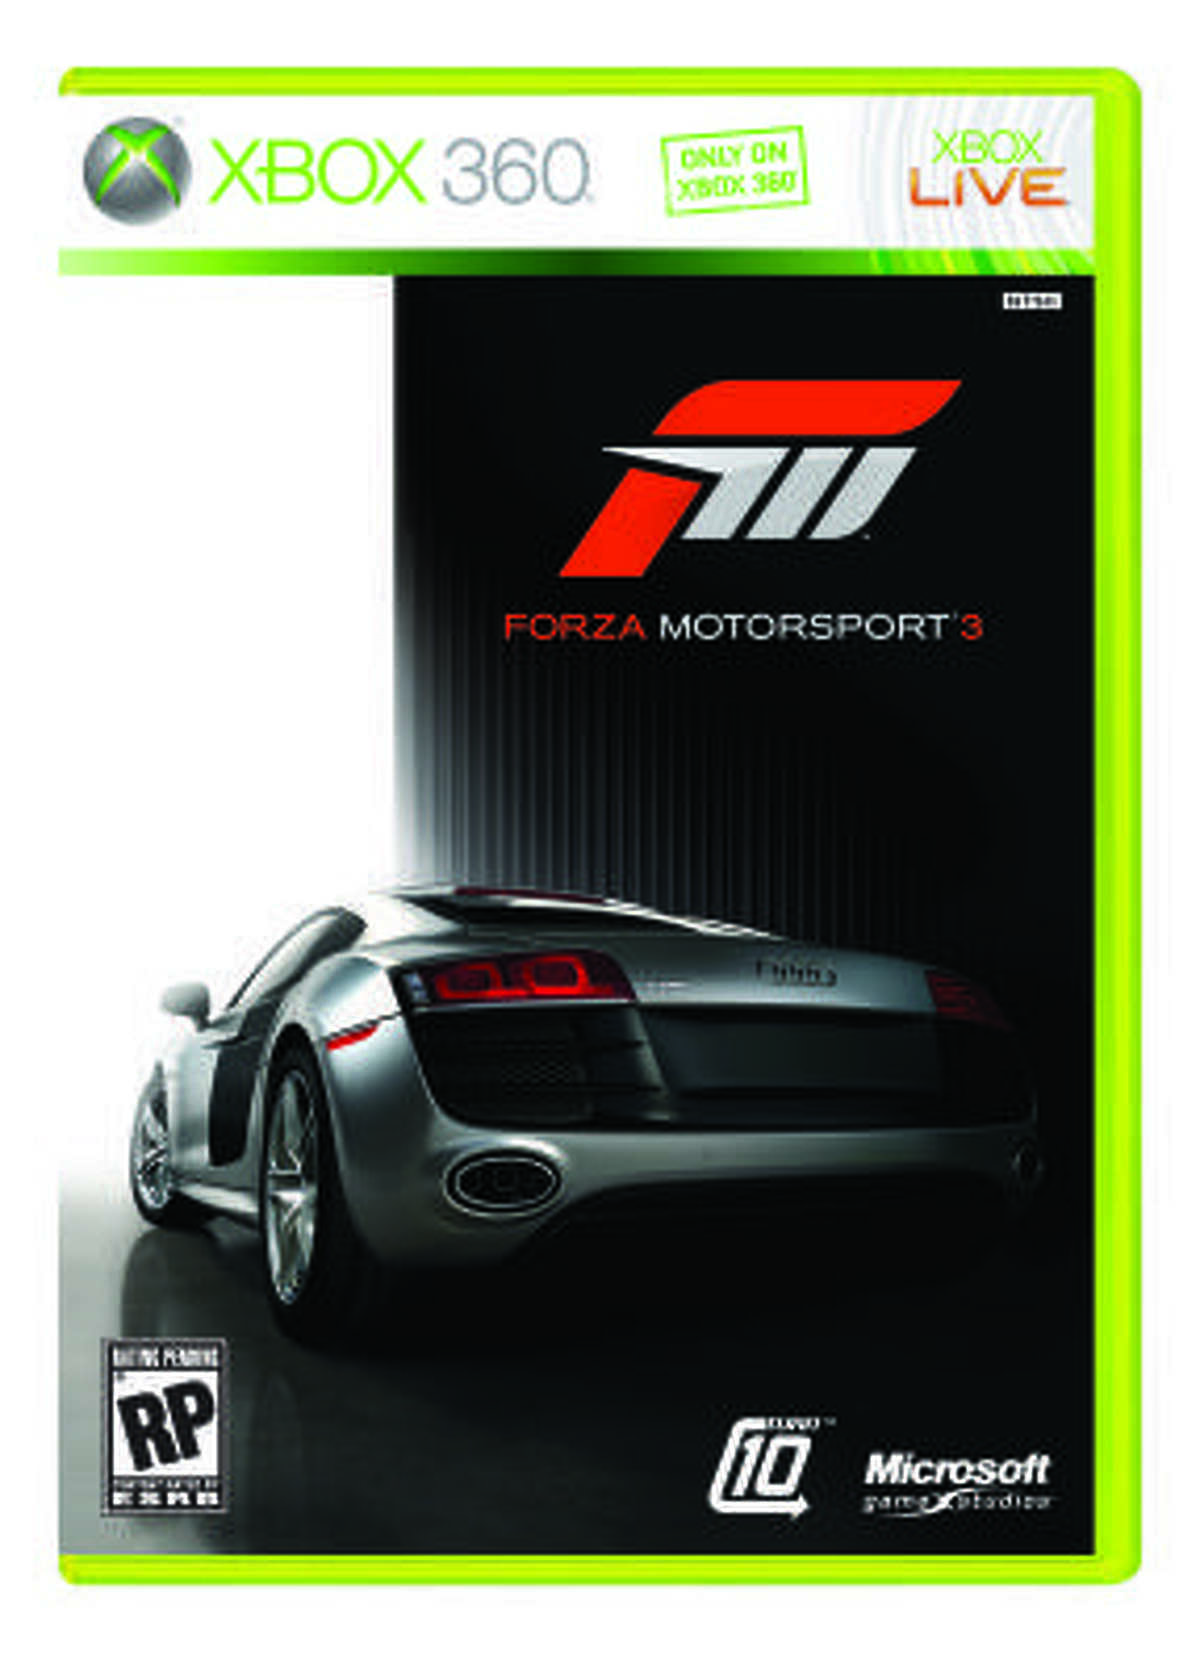 """Xbox 360: Forza Motorsport 3 Microsoft; Rated E for Everyone; $59.99 Forza 3 is a serious racer that is also a family-friendly. It's rated E for Everyone and offers players the chance to race on their own terms. Anyone can pick it up, race some and find themselves comfortable behind the wheel of Ferraris, Bentleys, even an R-34 Skyline. Turn 10 wanted to make a game where """"everyone can have fun behind the wheel."""" They succeeded."""